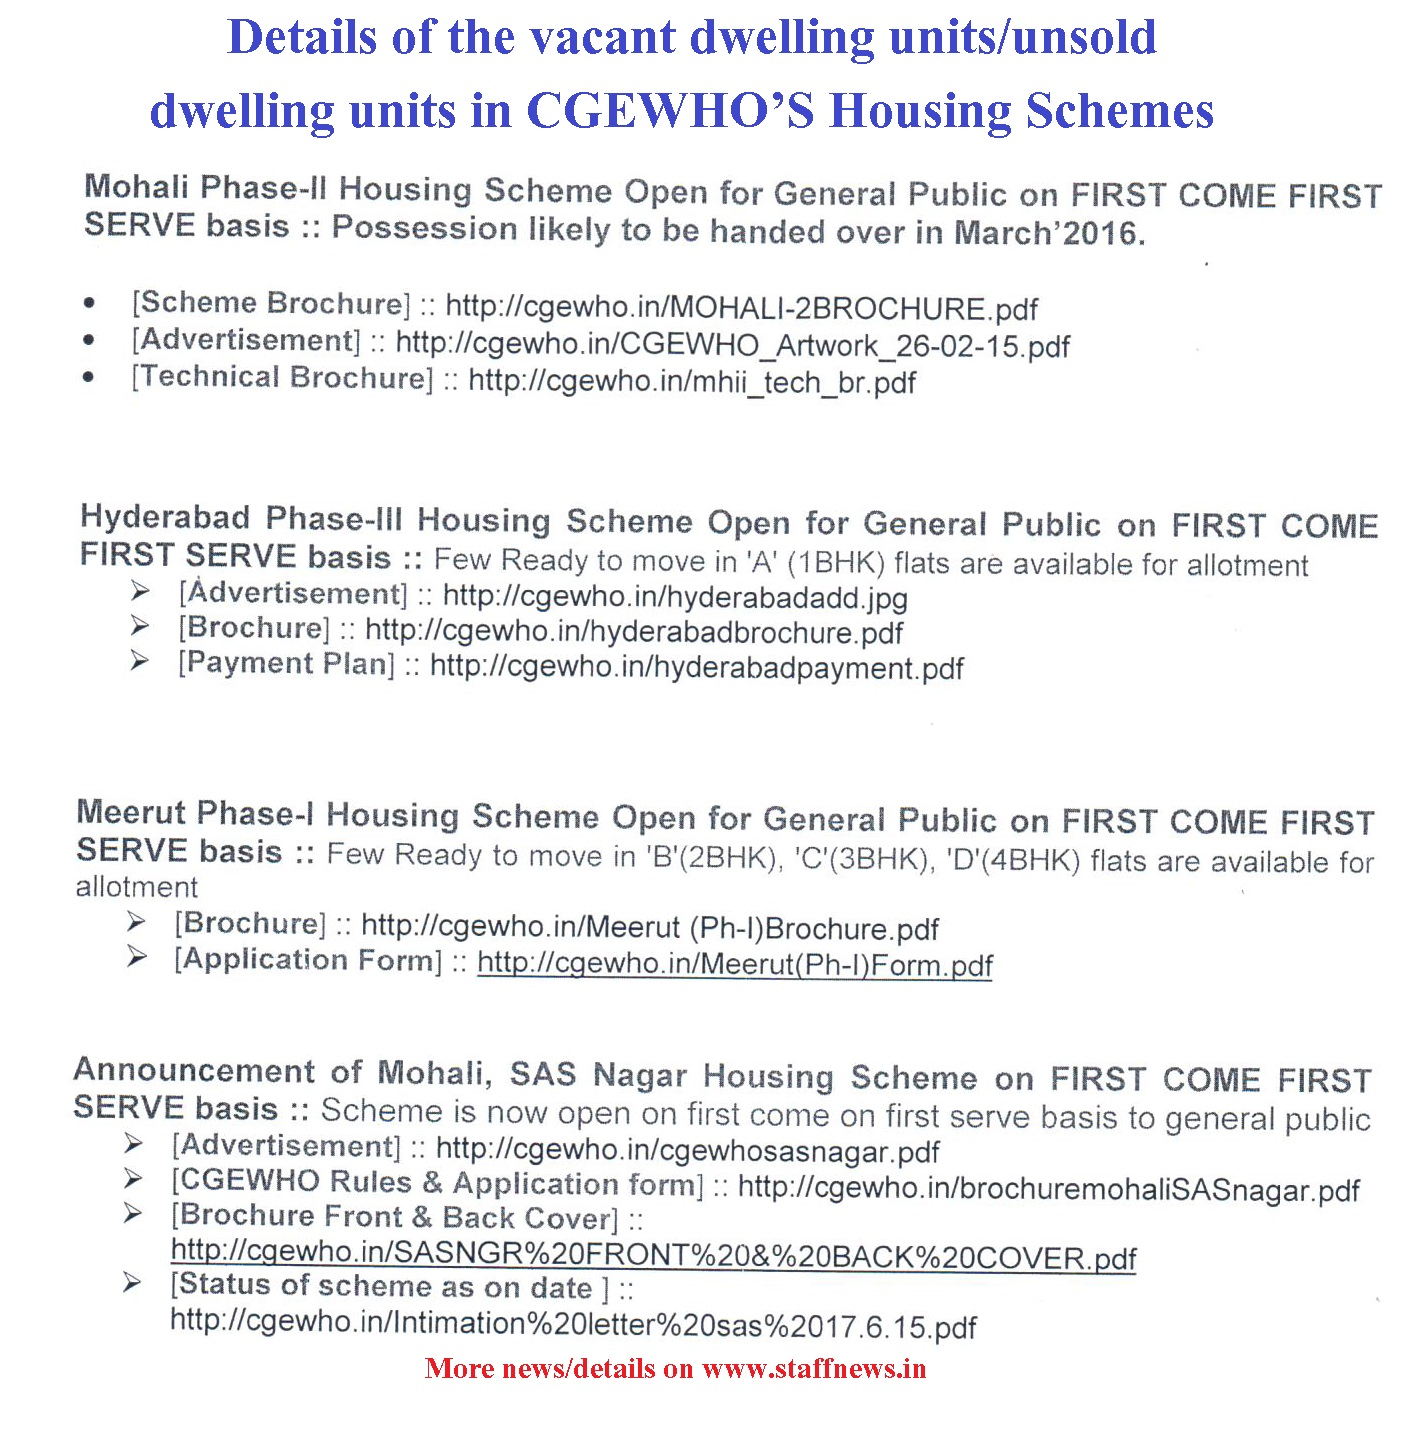 Vacant/unsold Dwelling Units In CGEWHO'S Housing Schemes